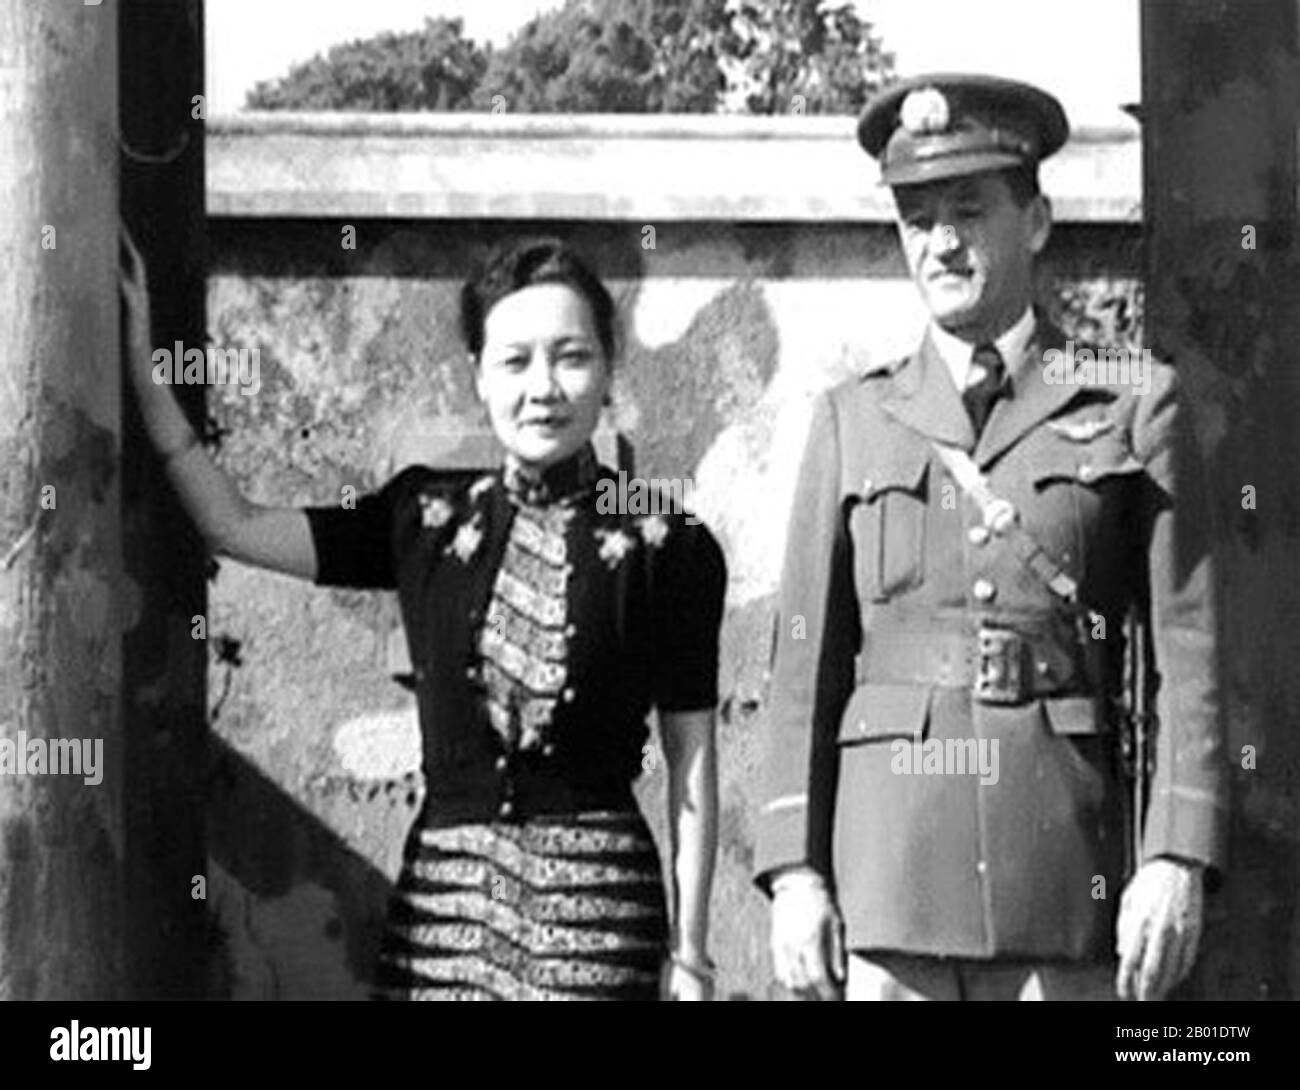 Soong May-ling or Soong Mei-ling, also known as Madame Chiang Kai-shek (traditional Chinese: 宋美齡; simplified Chinese: 宋美龄; pinyin: Sòng Měilíng; March 5, 1898 – October 23, 2003) was a First Lady of the Republic of China (ROC), the wife of former President Chiang Kai-shek (蔣中正 / 蔣介石).  Lieutenant General Claire Lee Chennault (September 6, 1893 – July 27, 1958), was an American military aviator. A contentious officer, he was a fierce advocate of fight-interceptor aircraft during the 1930s when the U.S. Army Air Corps was focused primarily on high-altitude bombardment. Chennault retired in 1937, Stock Photo